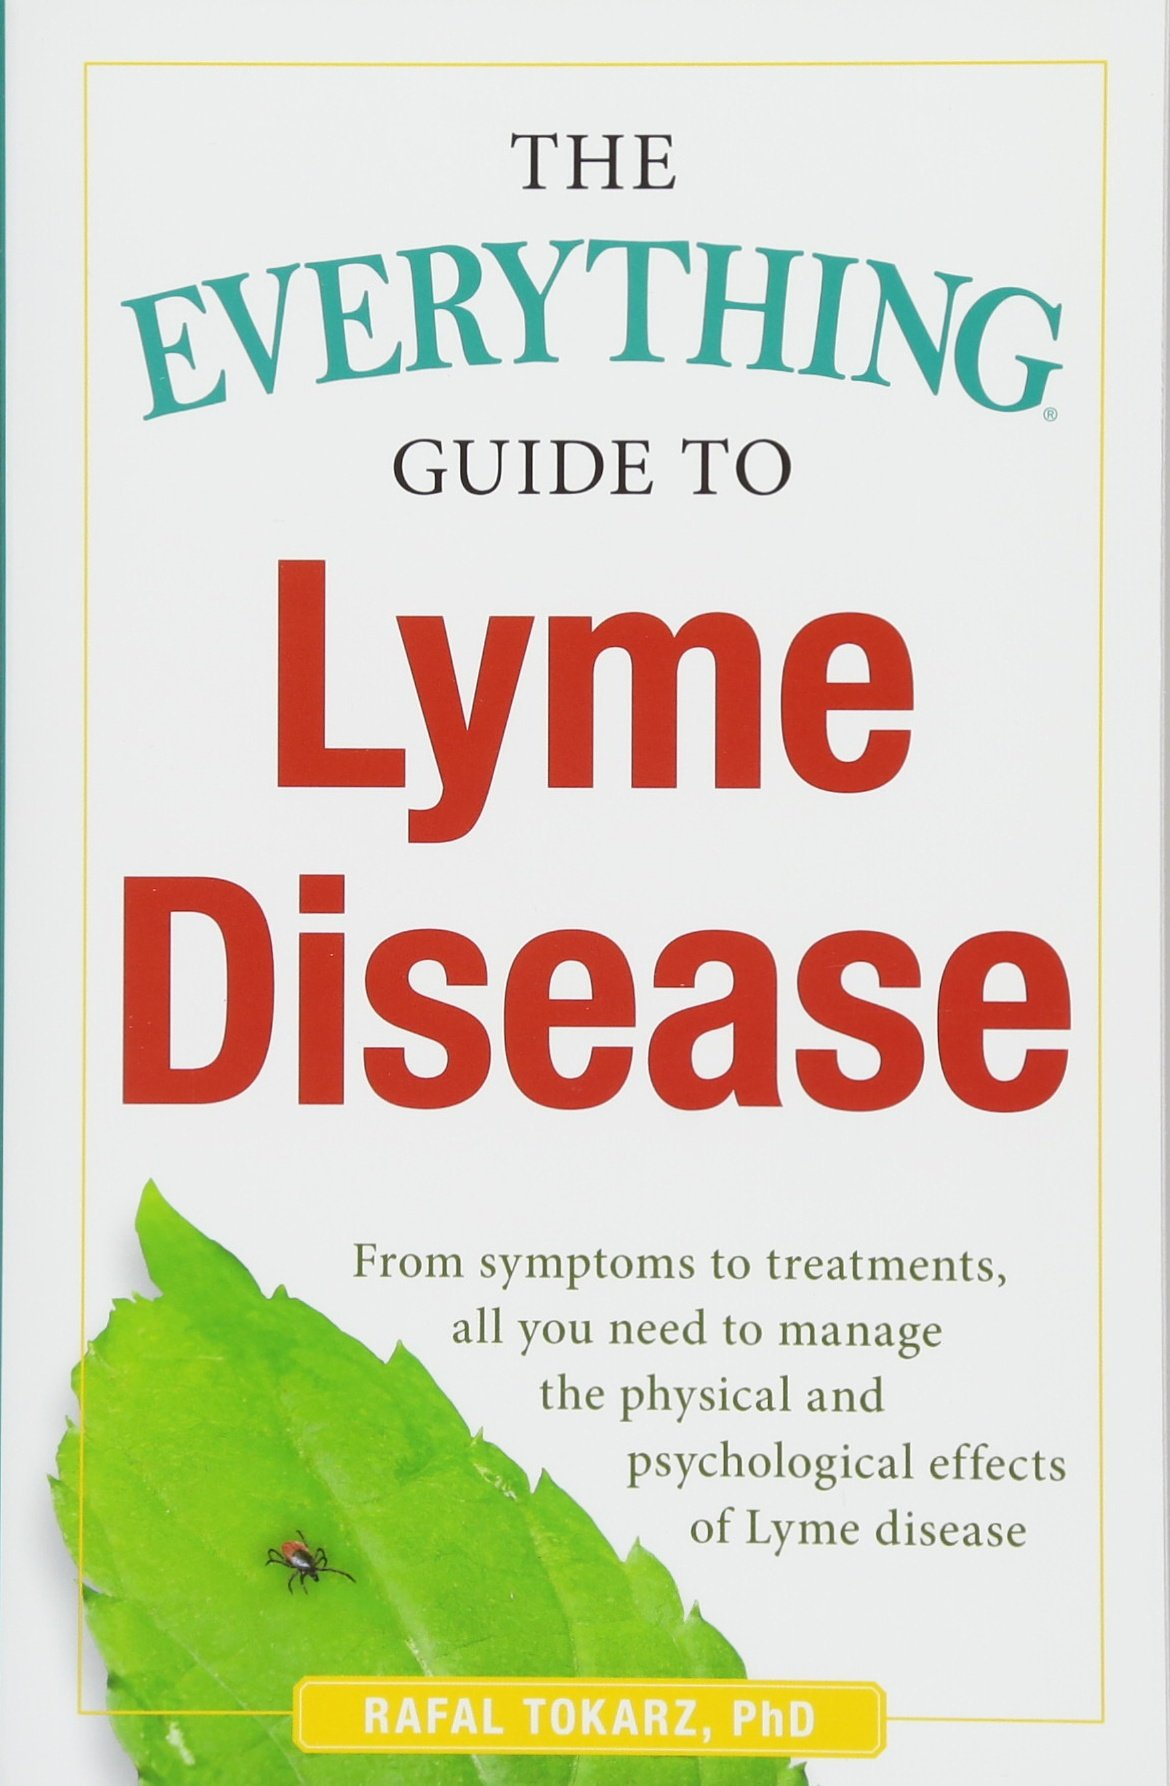 The Everything Guide To Lyme Disease: From Symptoms to Treatments, All You Need to Manage the Physical and Psychological Effects of Lyme Disease Paperback – May 8, 2018 Rafal Tokarz PhD 1440577099 Diseases - General Physical Impairments